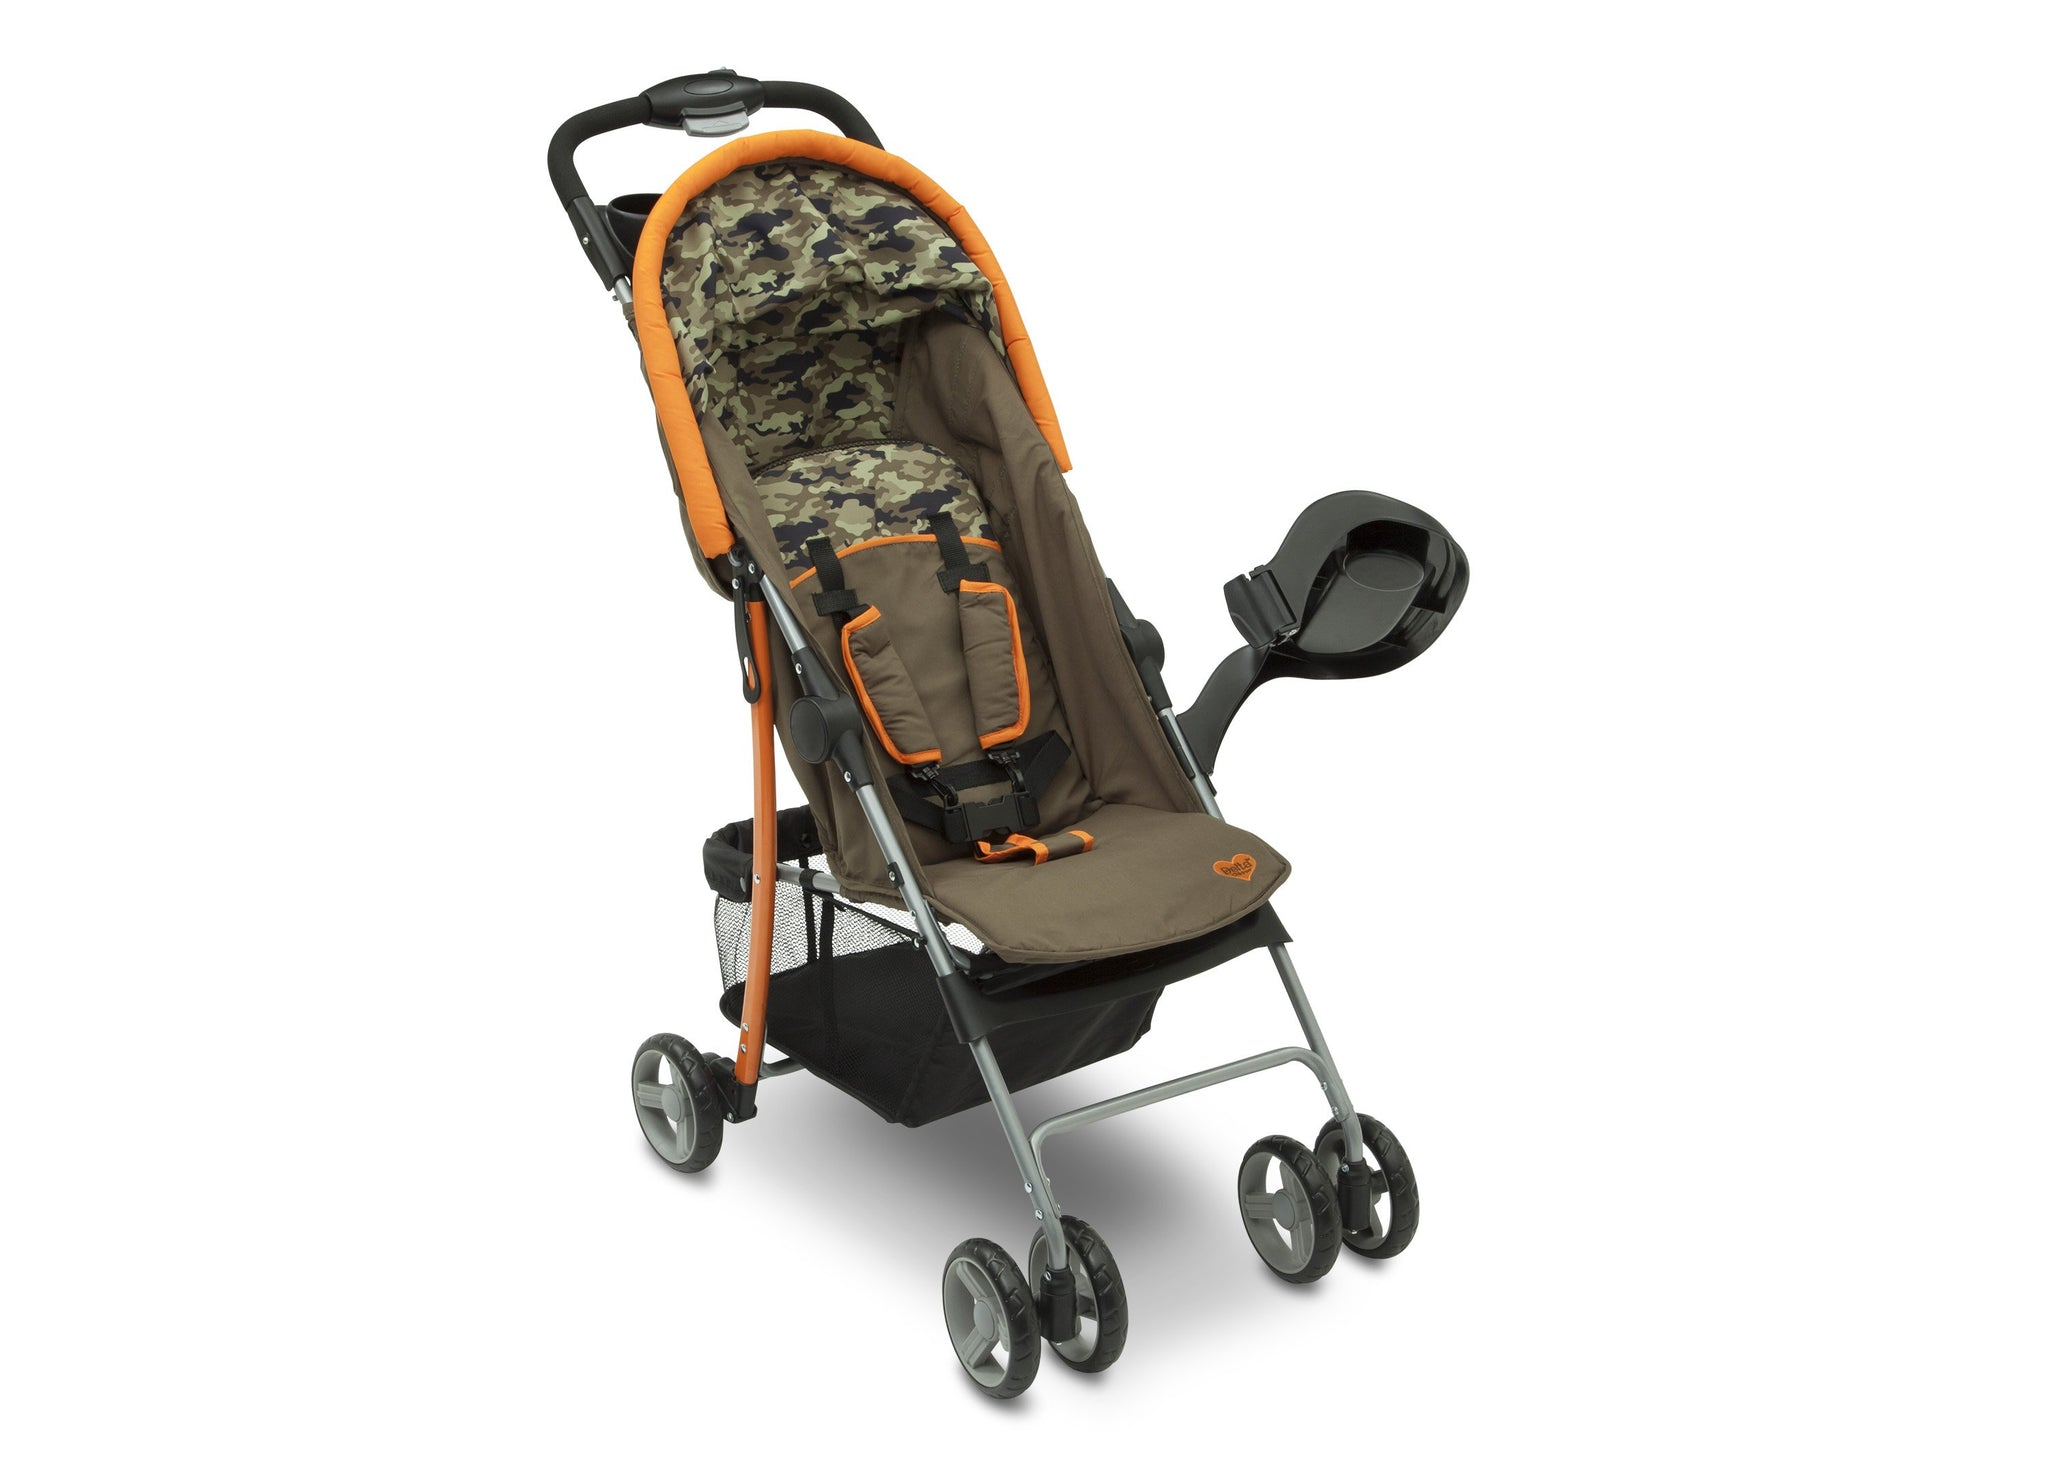 Delta Children Green Camo with Orange Accents (346) Right Side View, with Canopy and Child Tray Tracks